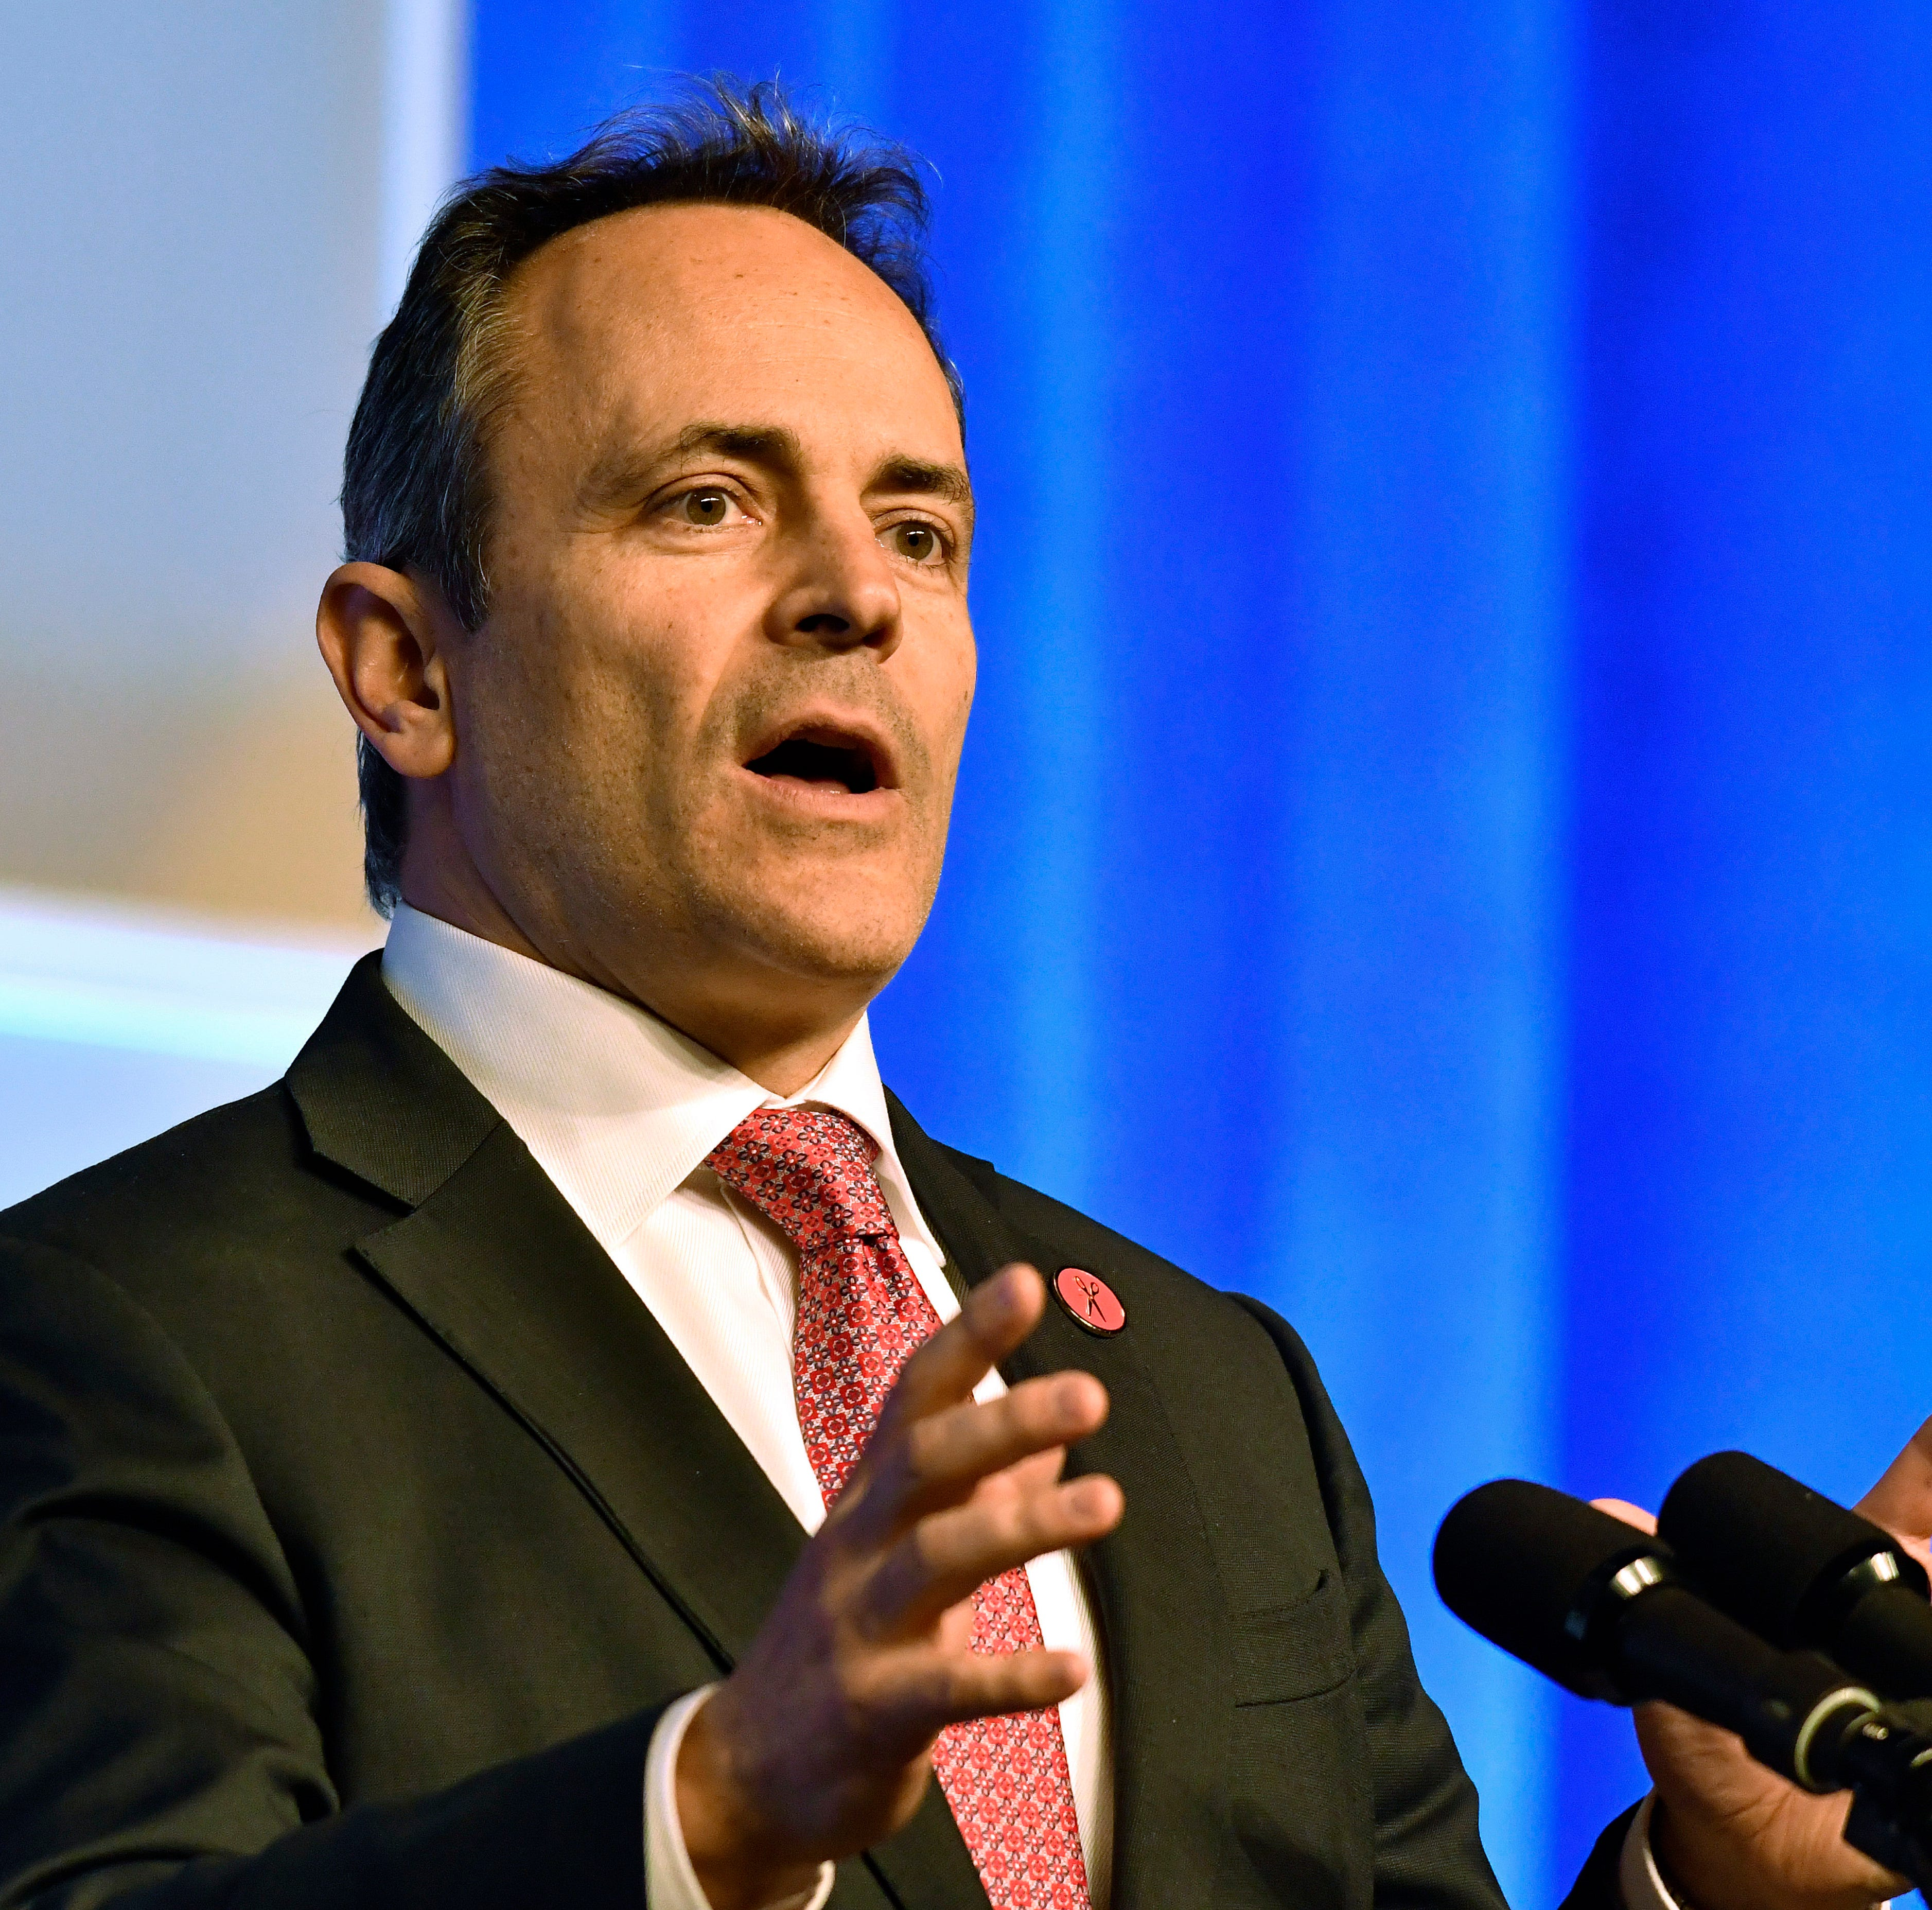 Matt Bevin blames Louisville basketball's NCAA loss on Jeff Walz's 'silliness'